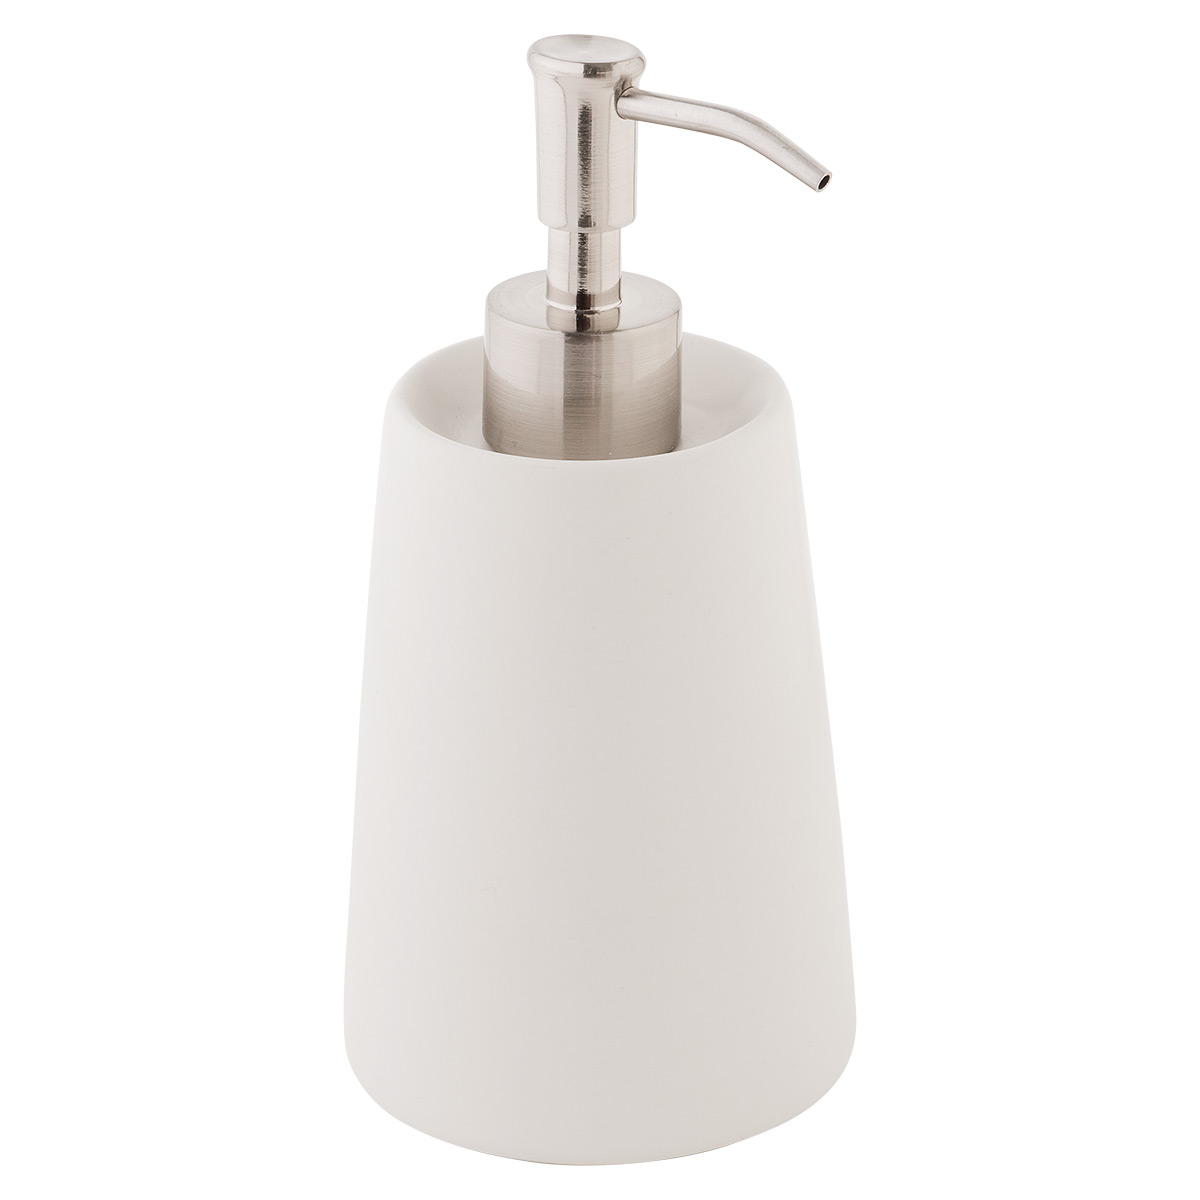 Crater Soap Dispenser